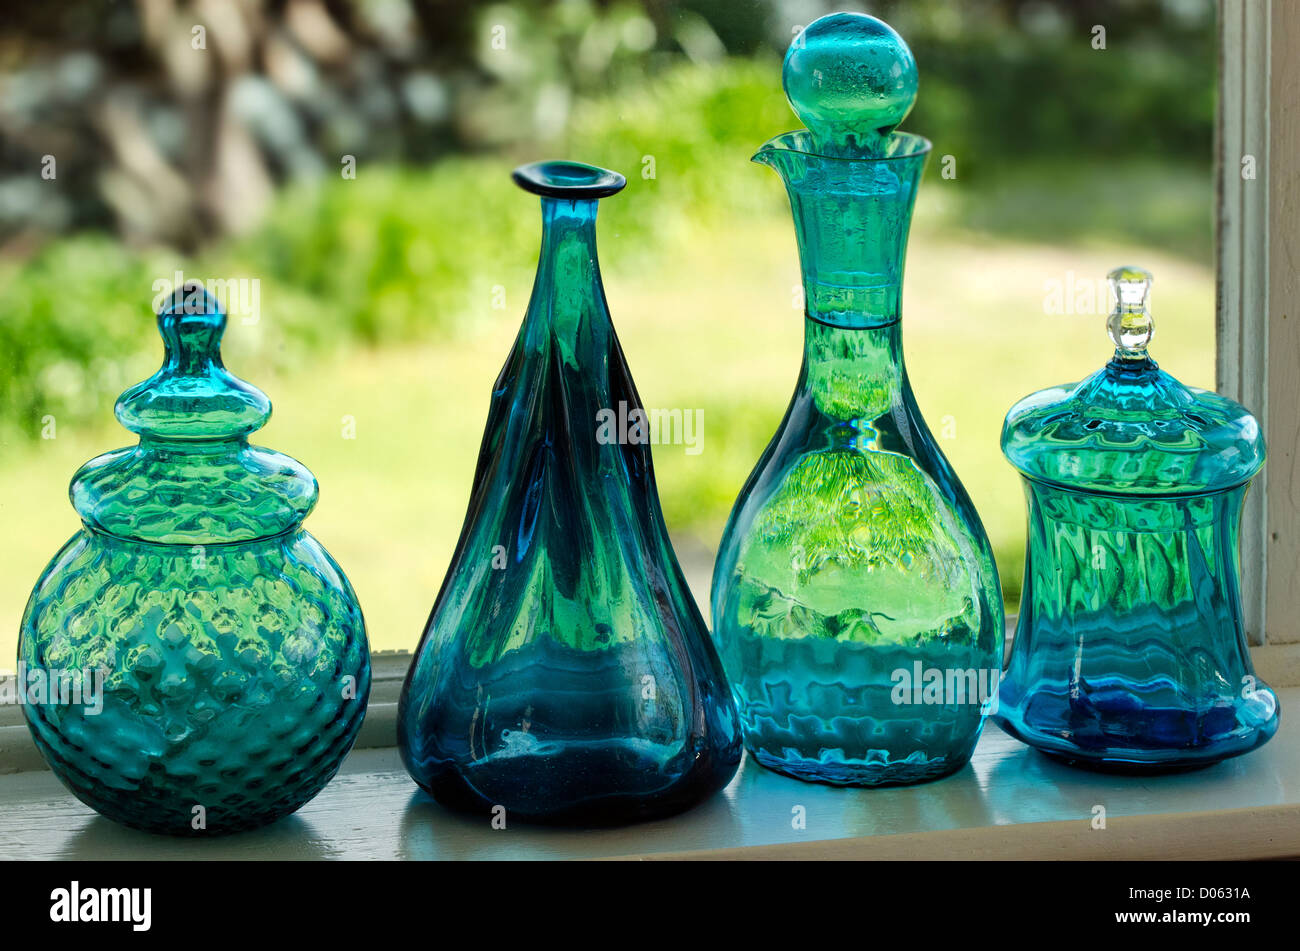 Unique green glassware on kitchen window. - Stock Image